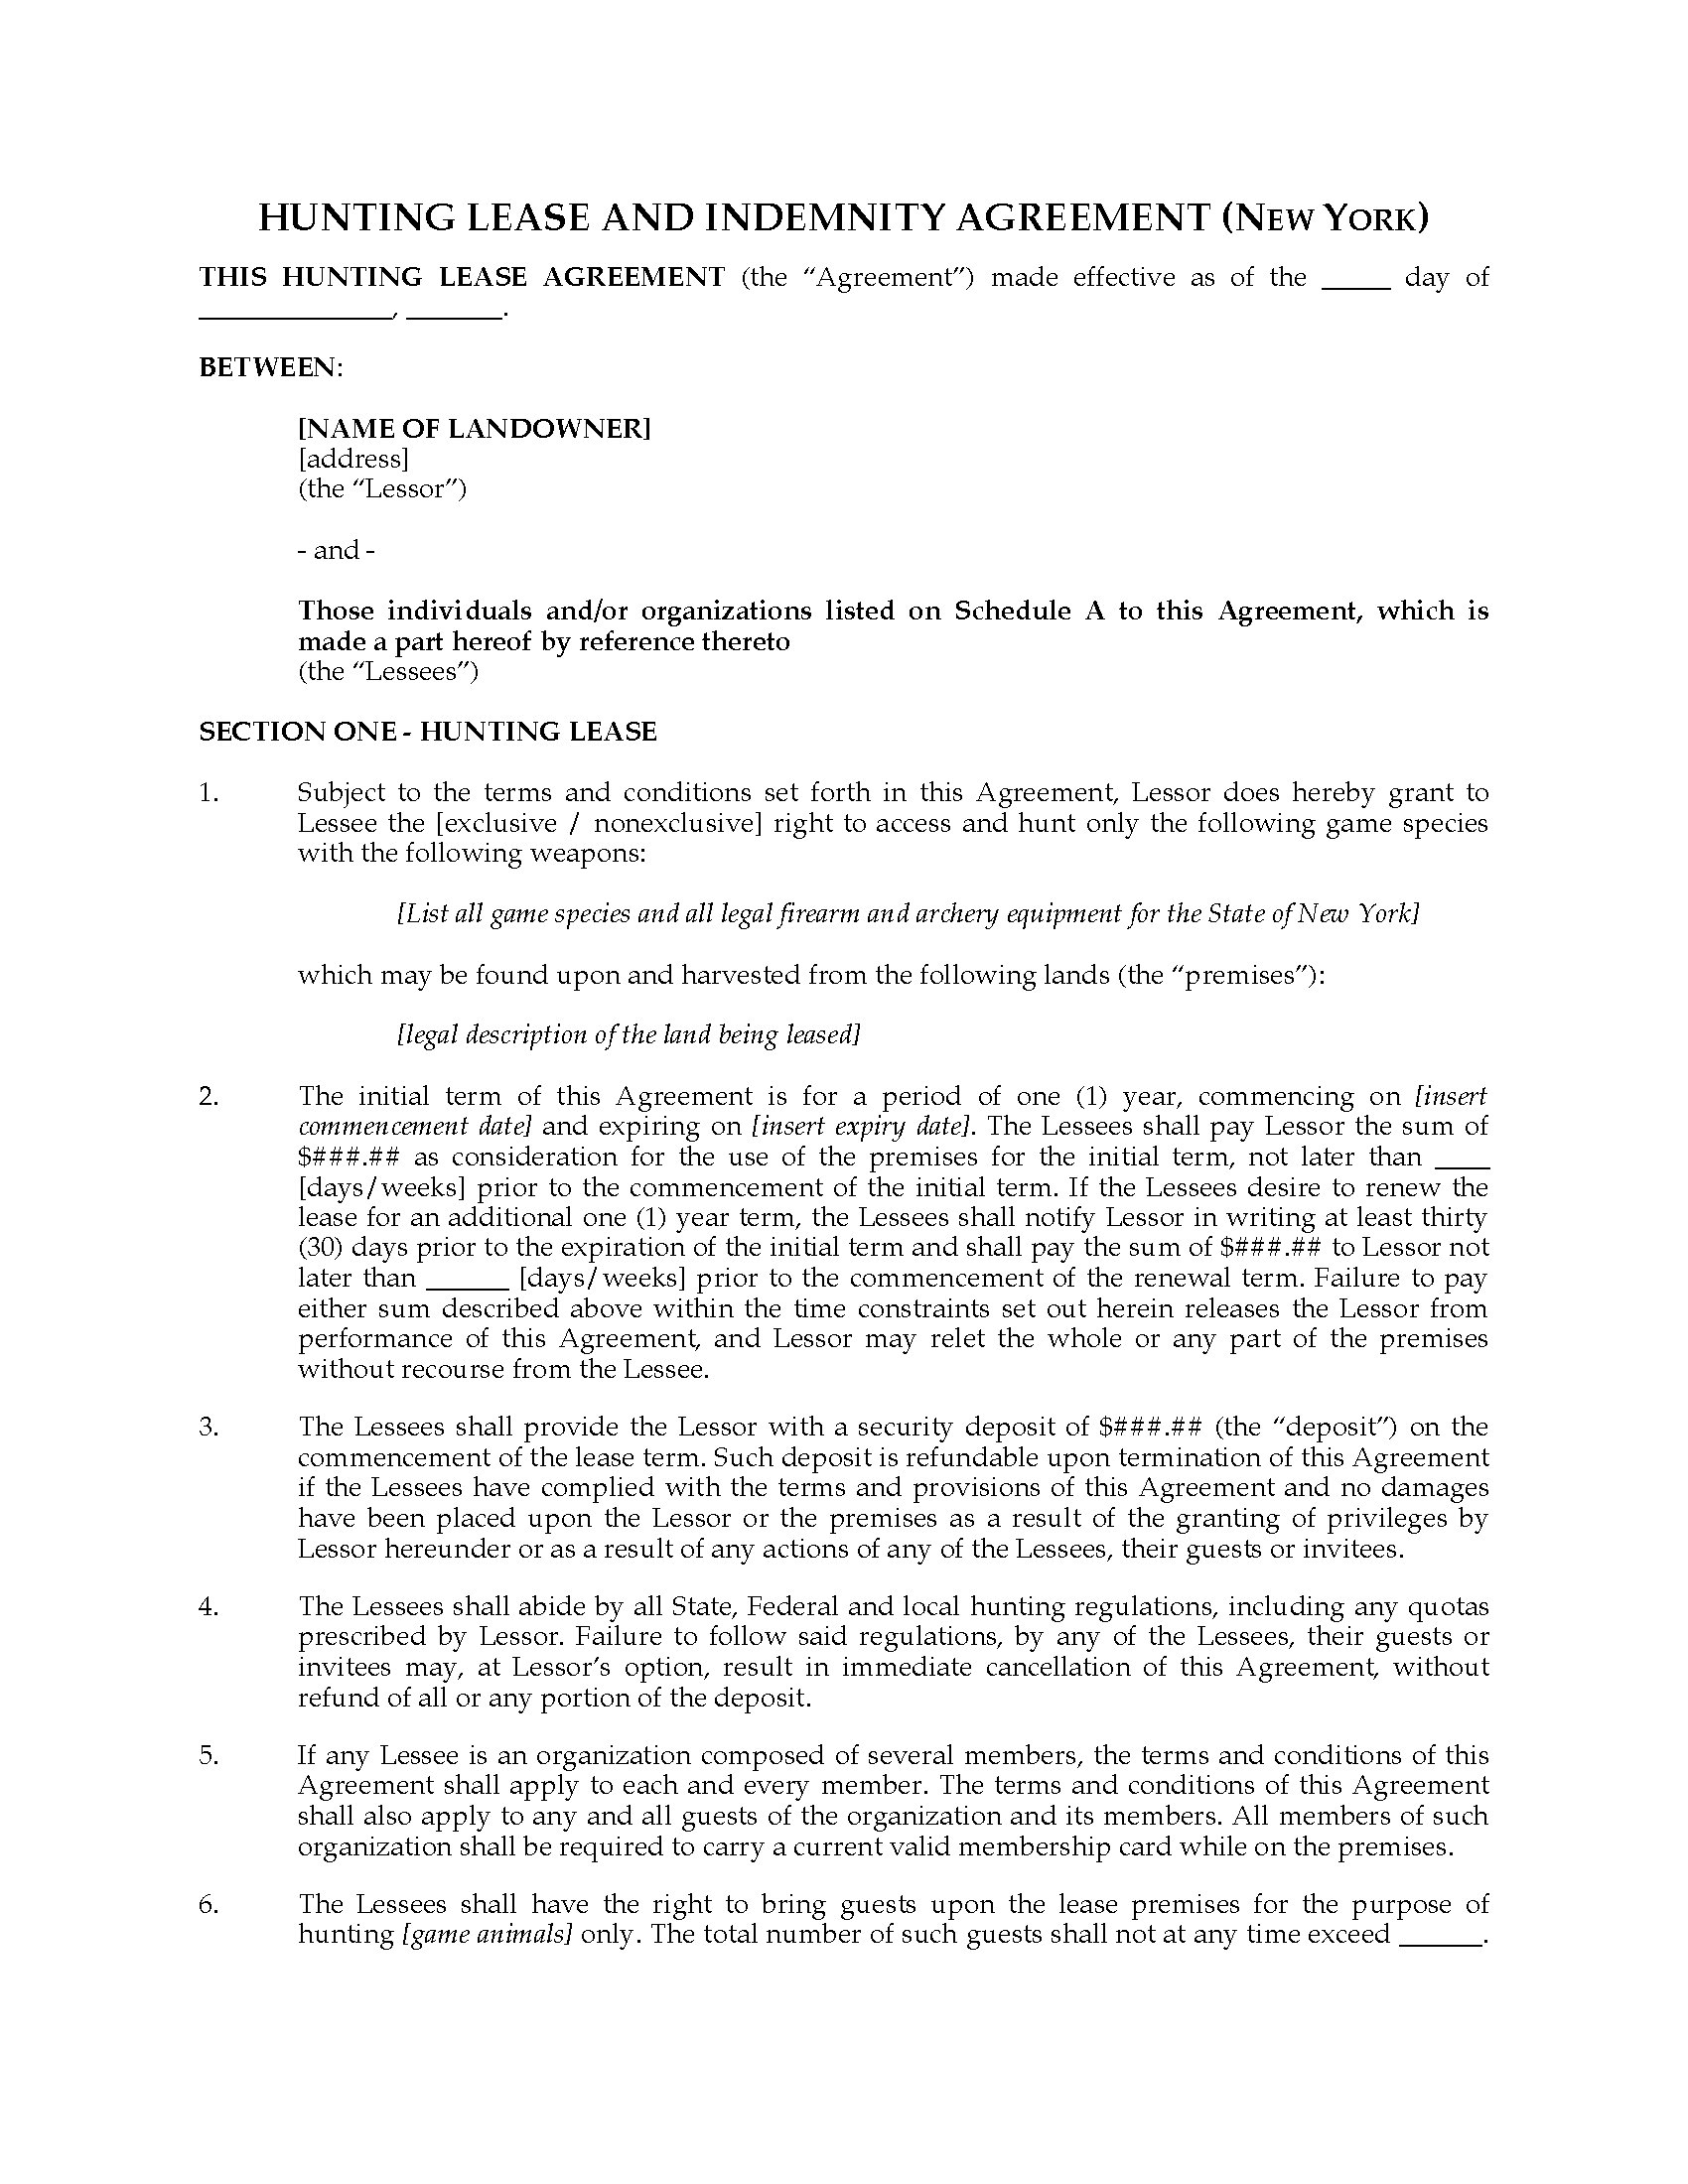 New York Hunting Lease Agreement